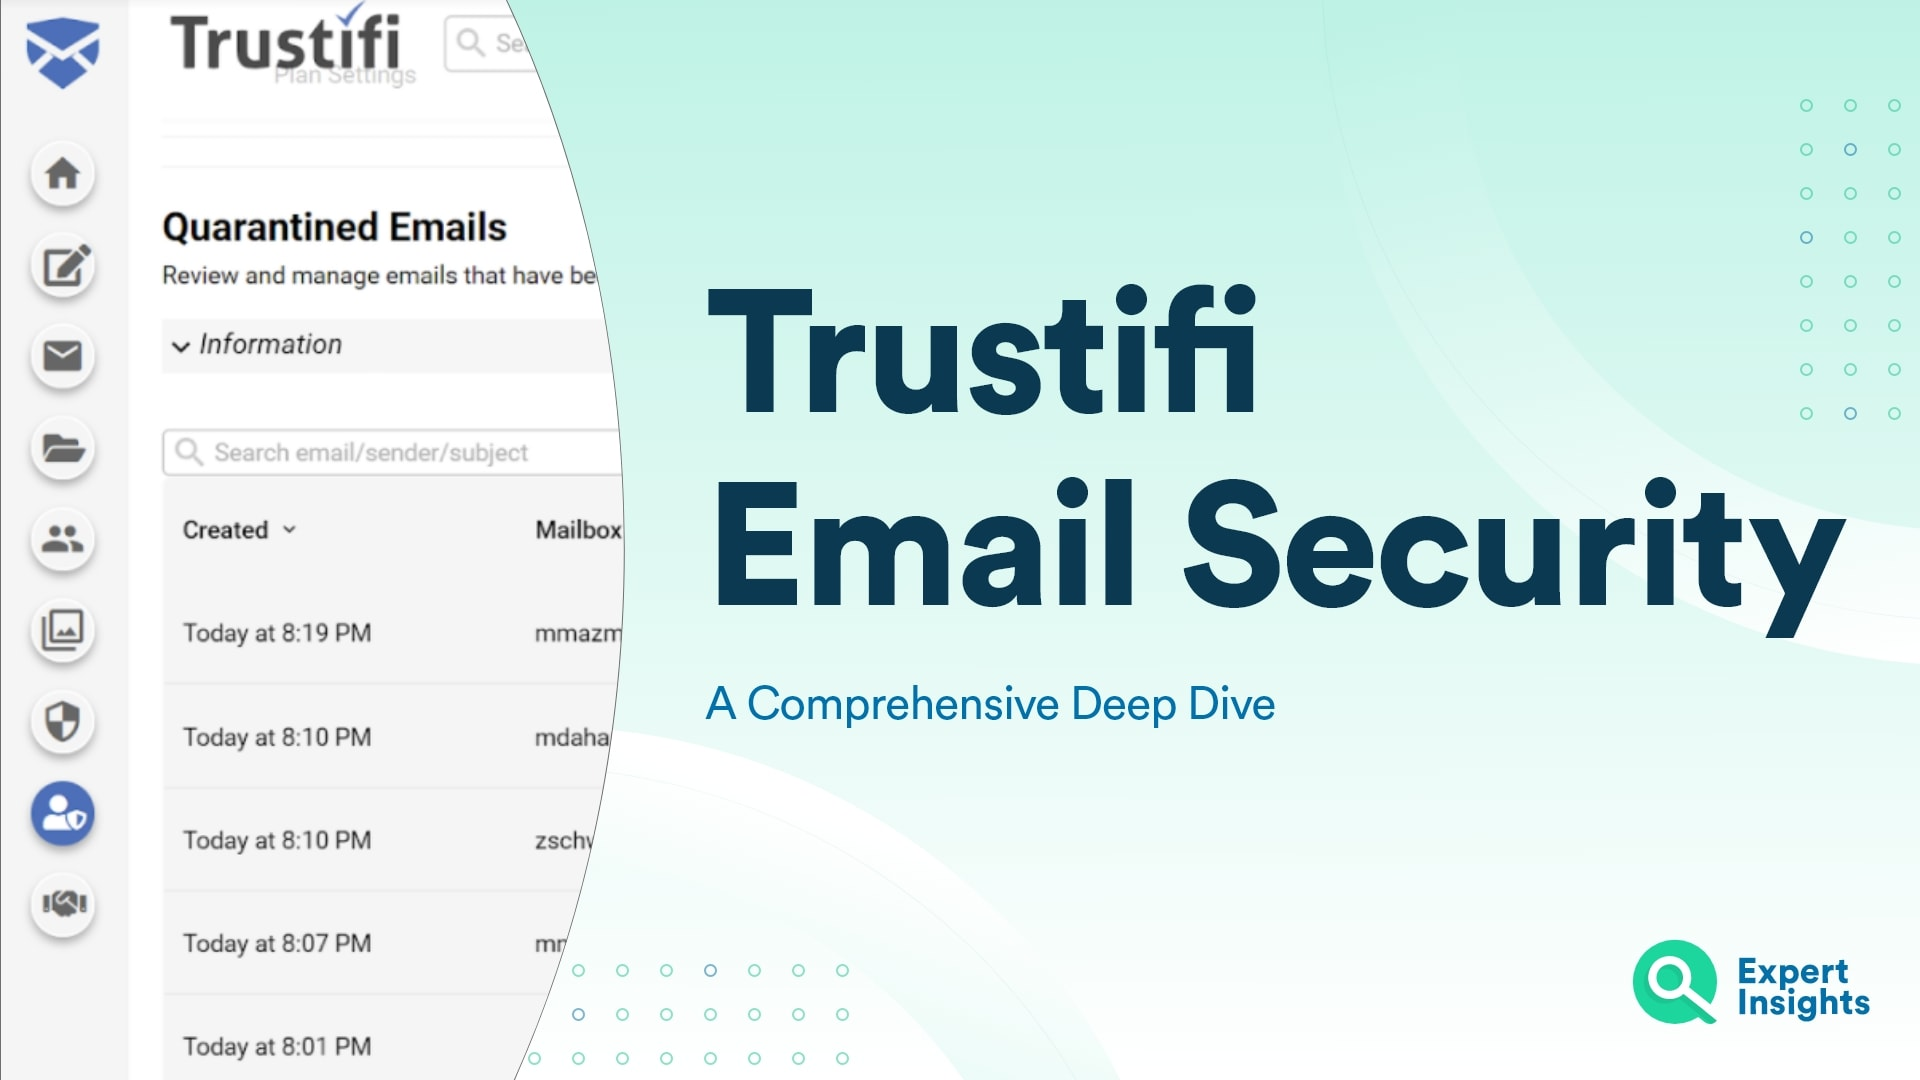 Trustifi Email Security: Product Overview And Features Deep Dive - Expert Insights